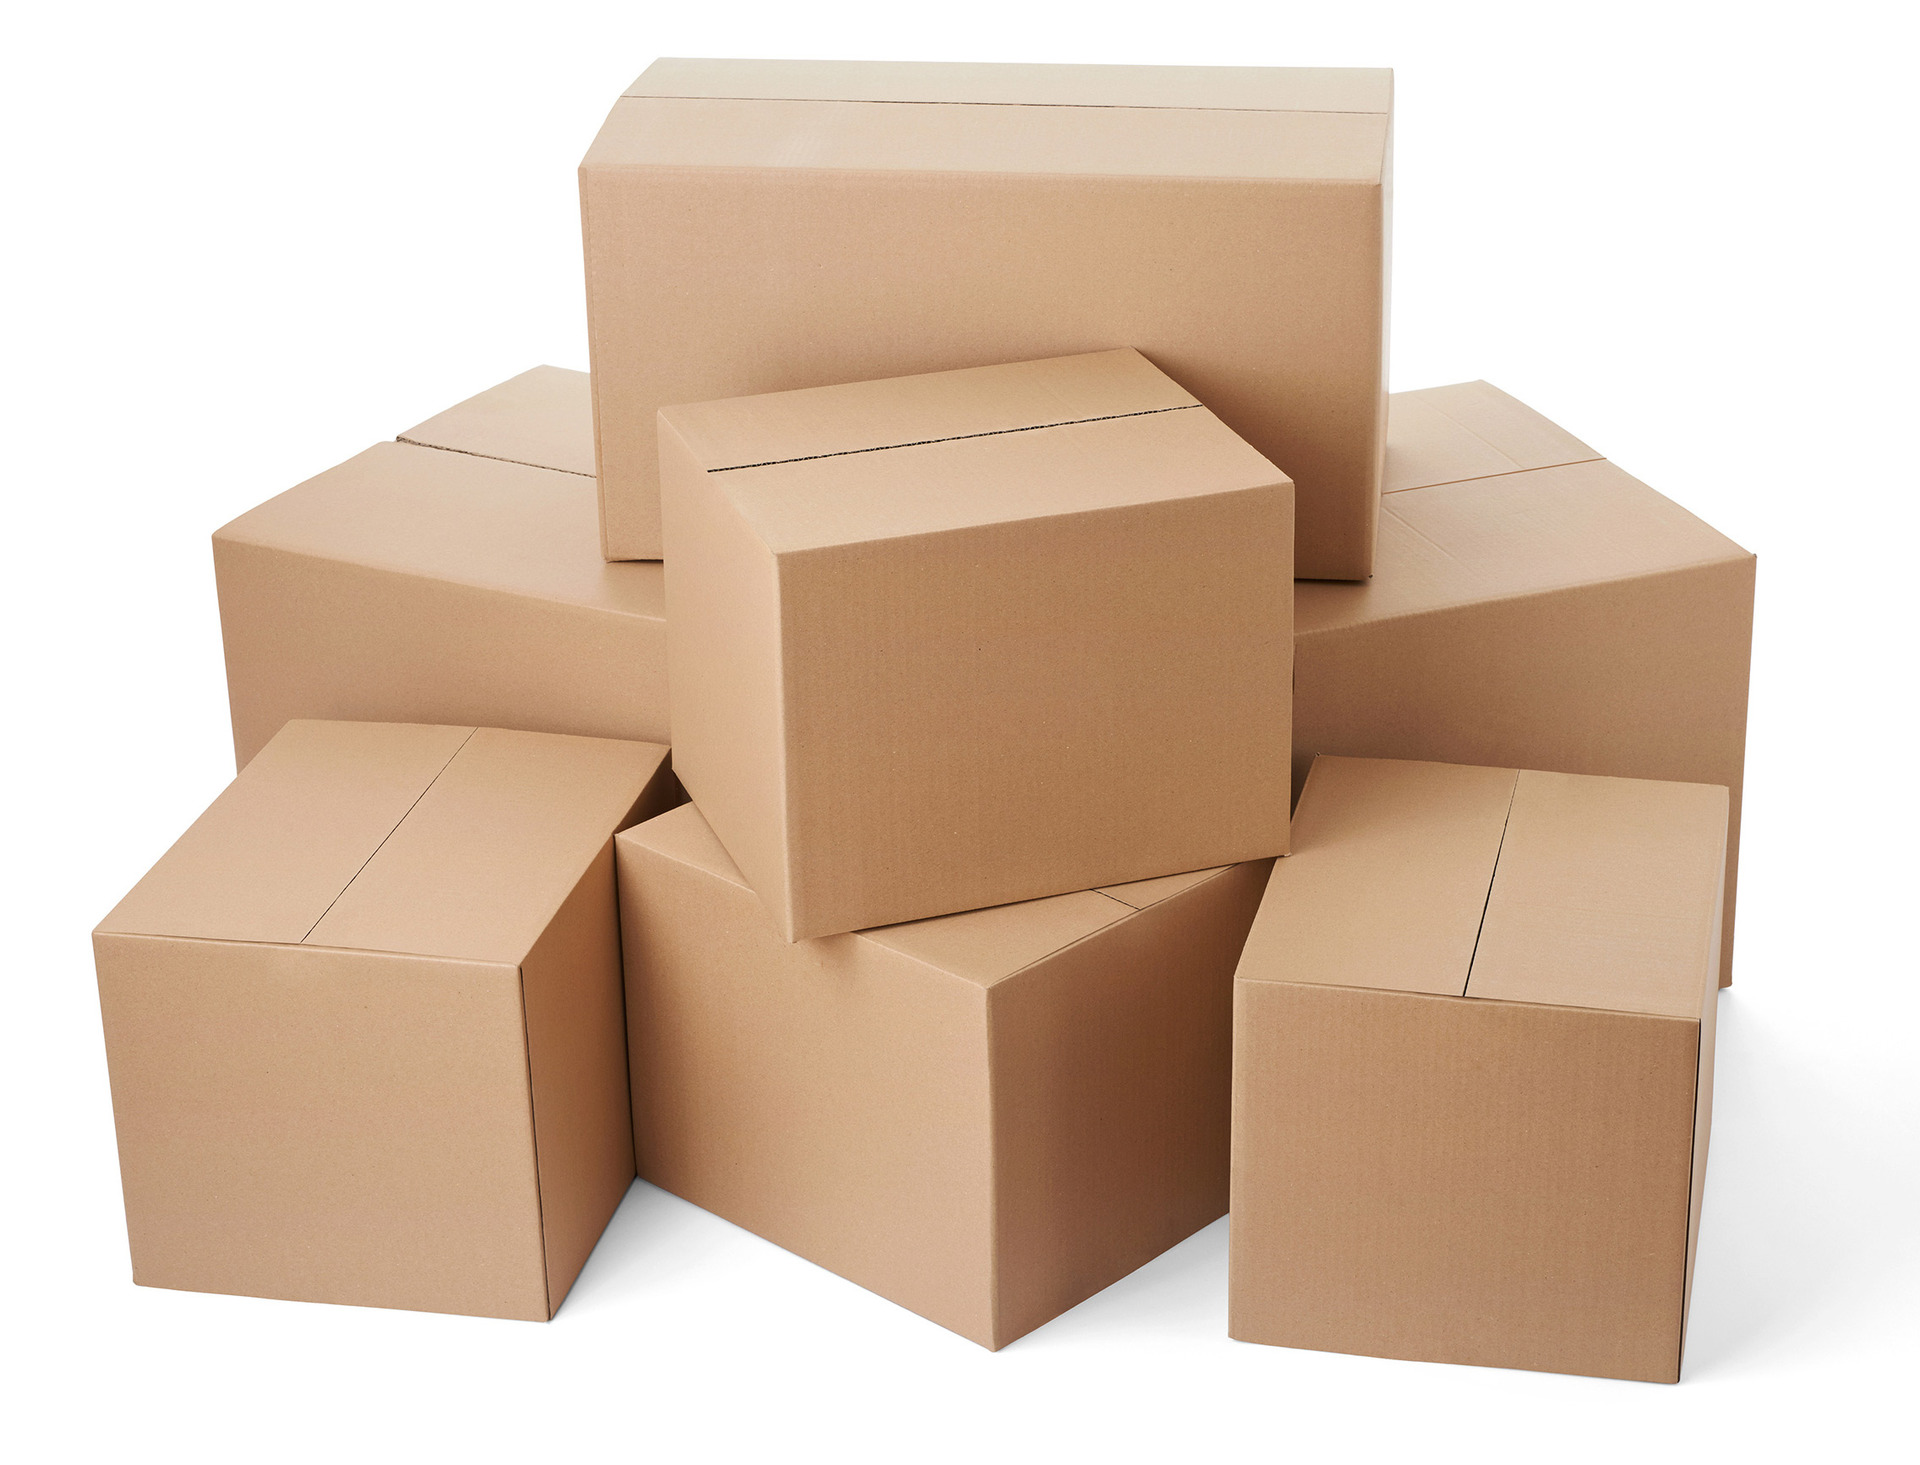 Clipart boxes download 103+ Boxes Clipart | ClipartLook download